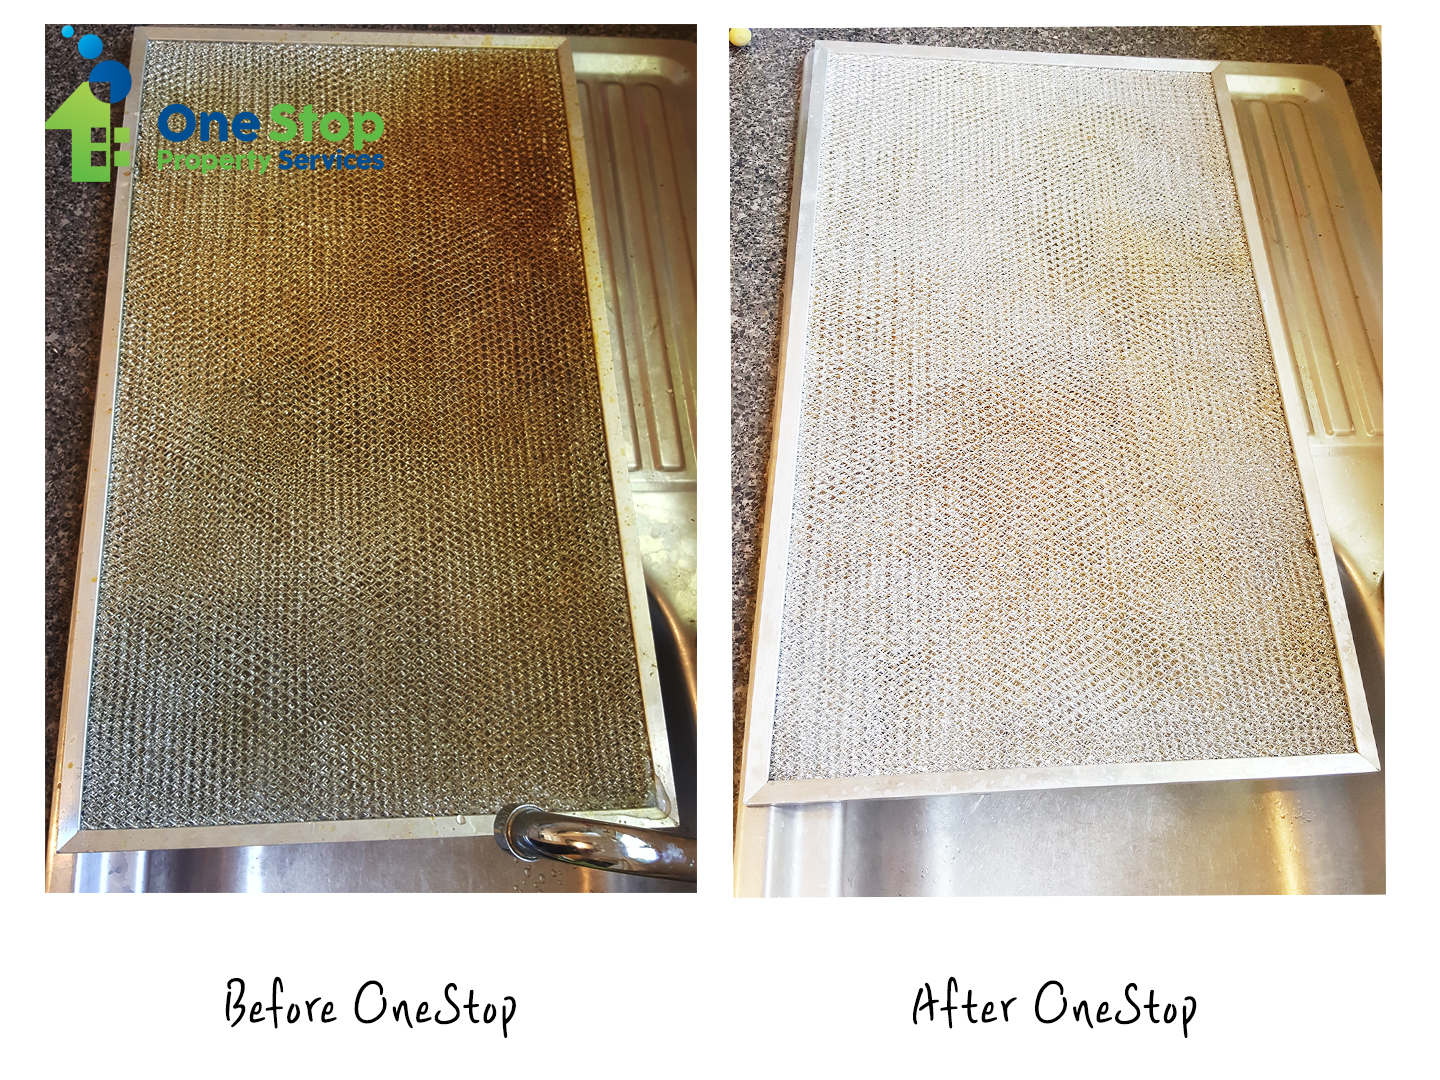 Before and after cleaning the kitchen induction vent filter